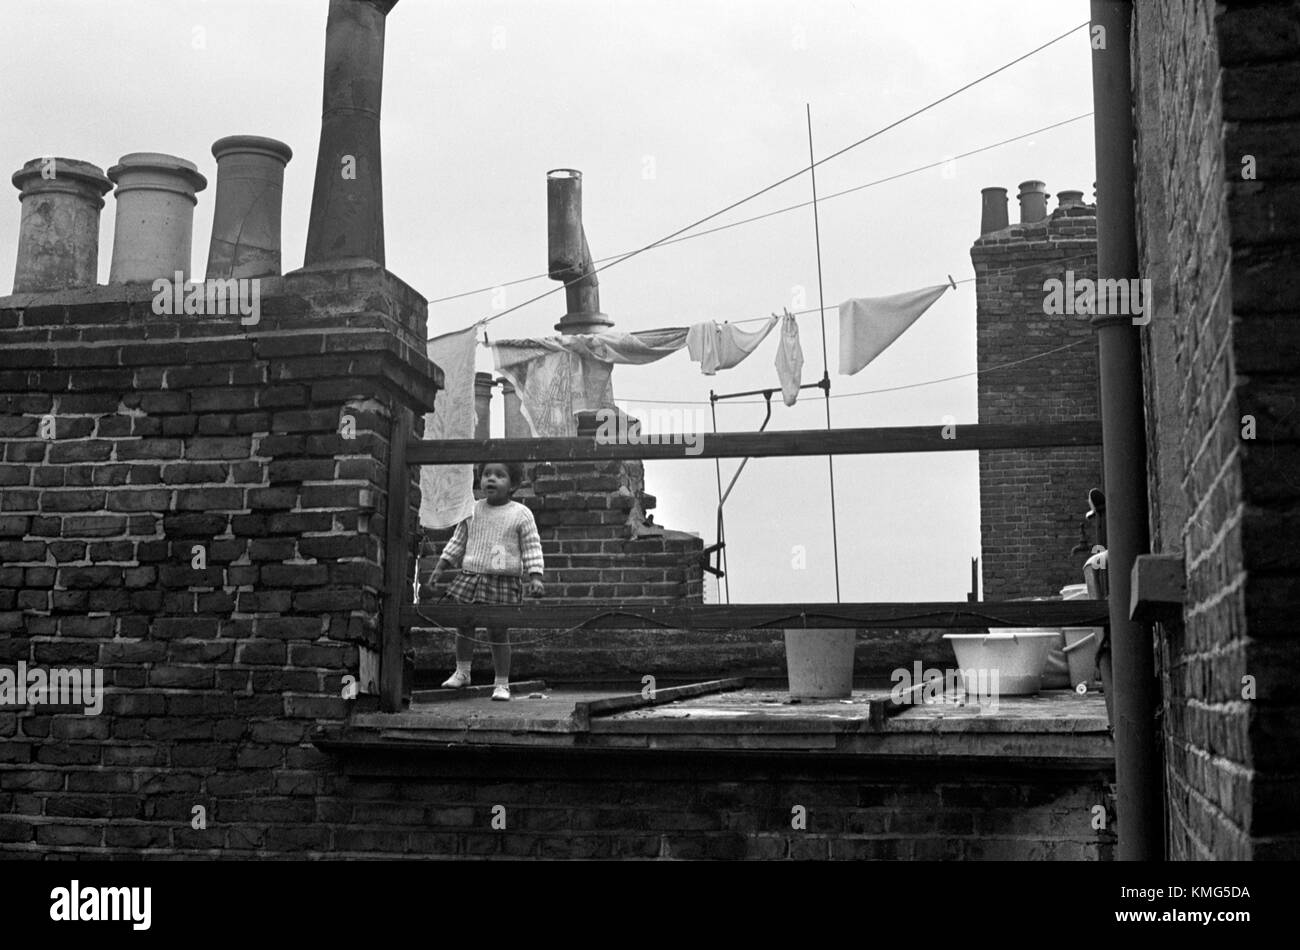 Slums London Stock Photos Amp Slums London Stock Images Alamy